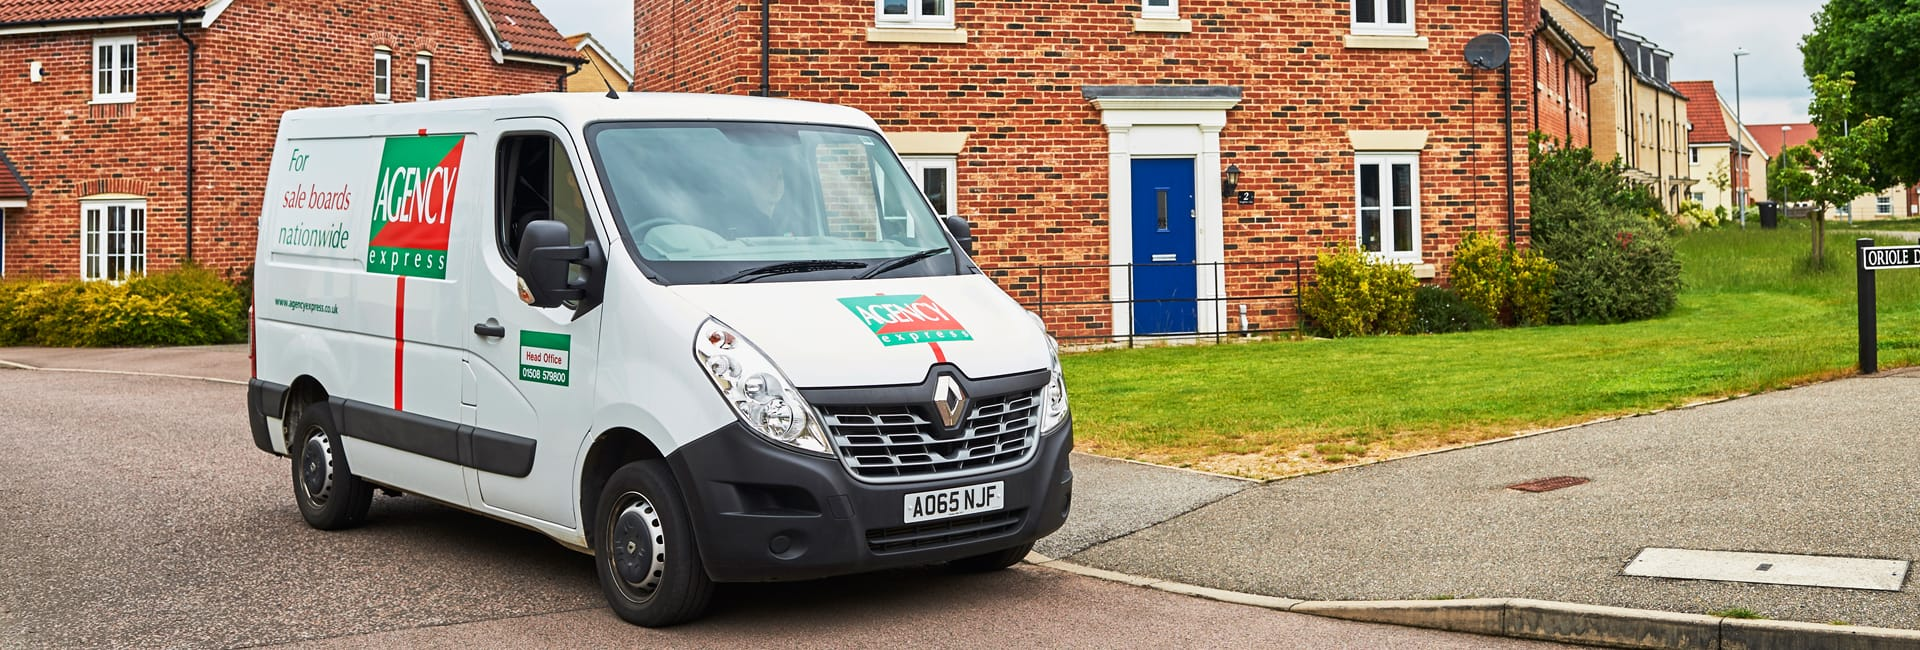 The Agency Express franchise package. A van based business.